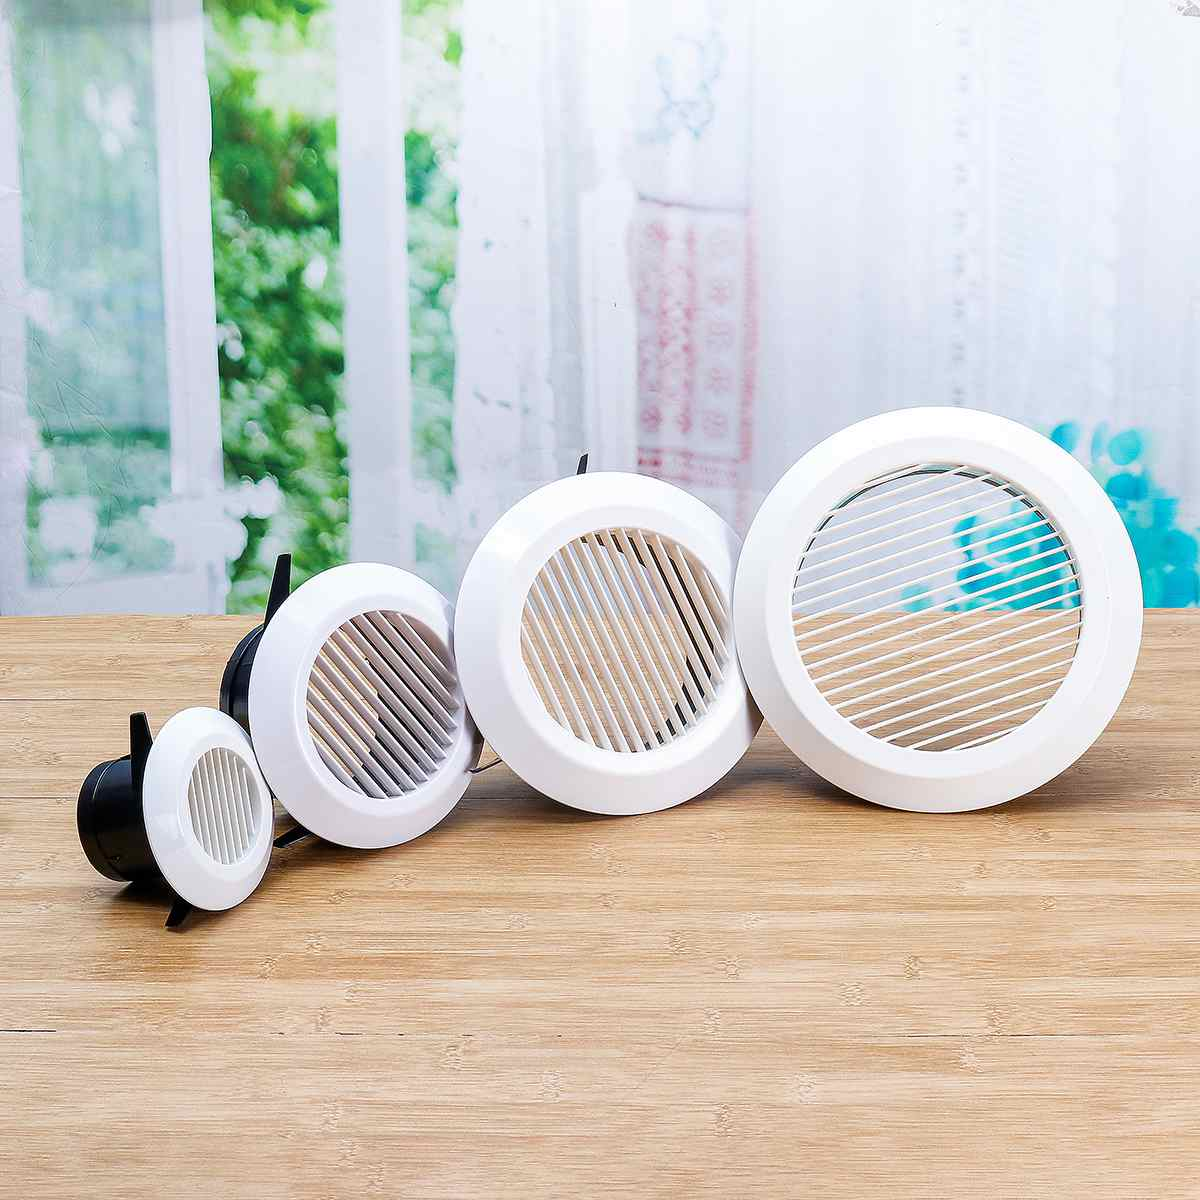 Air Vent Ventilation Grille Grid Air Vent Round Louver Grille Cover Grate Ventilator For Kitchen Bathroom Ventilation 75-200mm